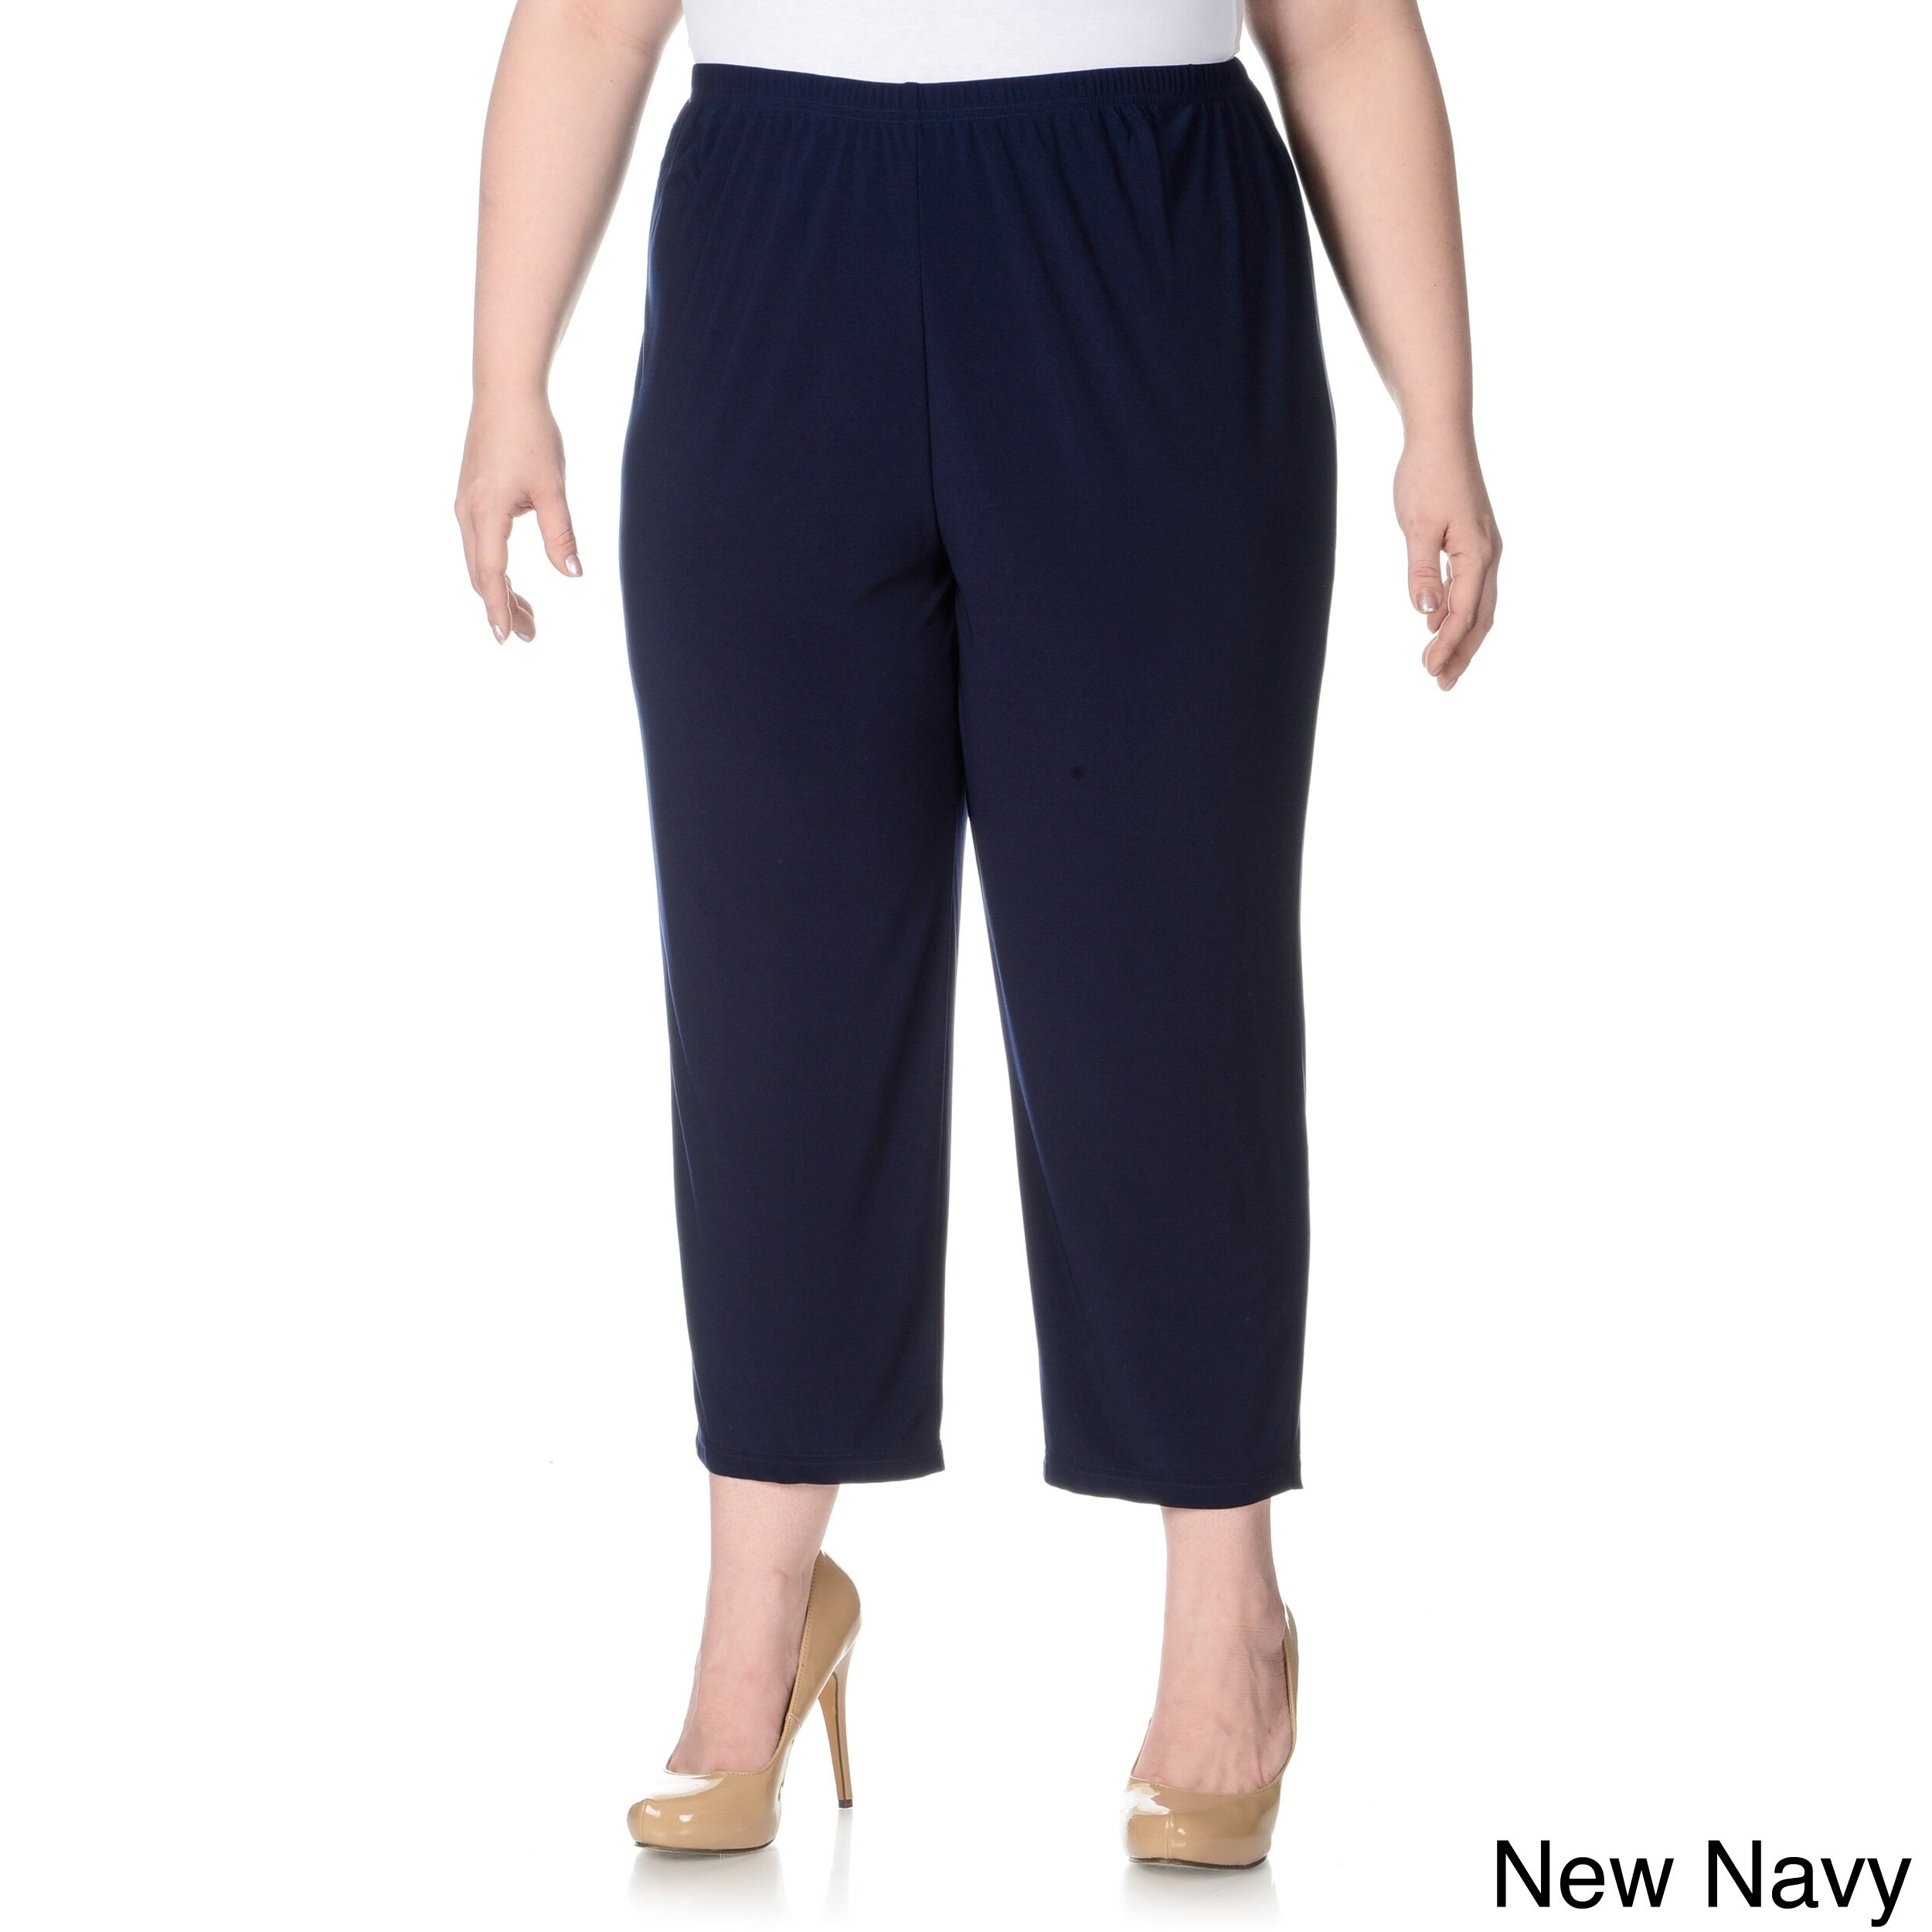 Lennie For Nina Leonard Lennie For Nina Leonard Womens Plus Size Cropped Pull on Pants Navy Size 2X (18W  20W)